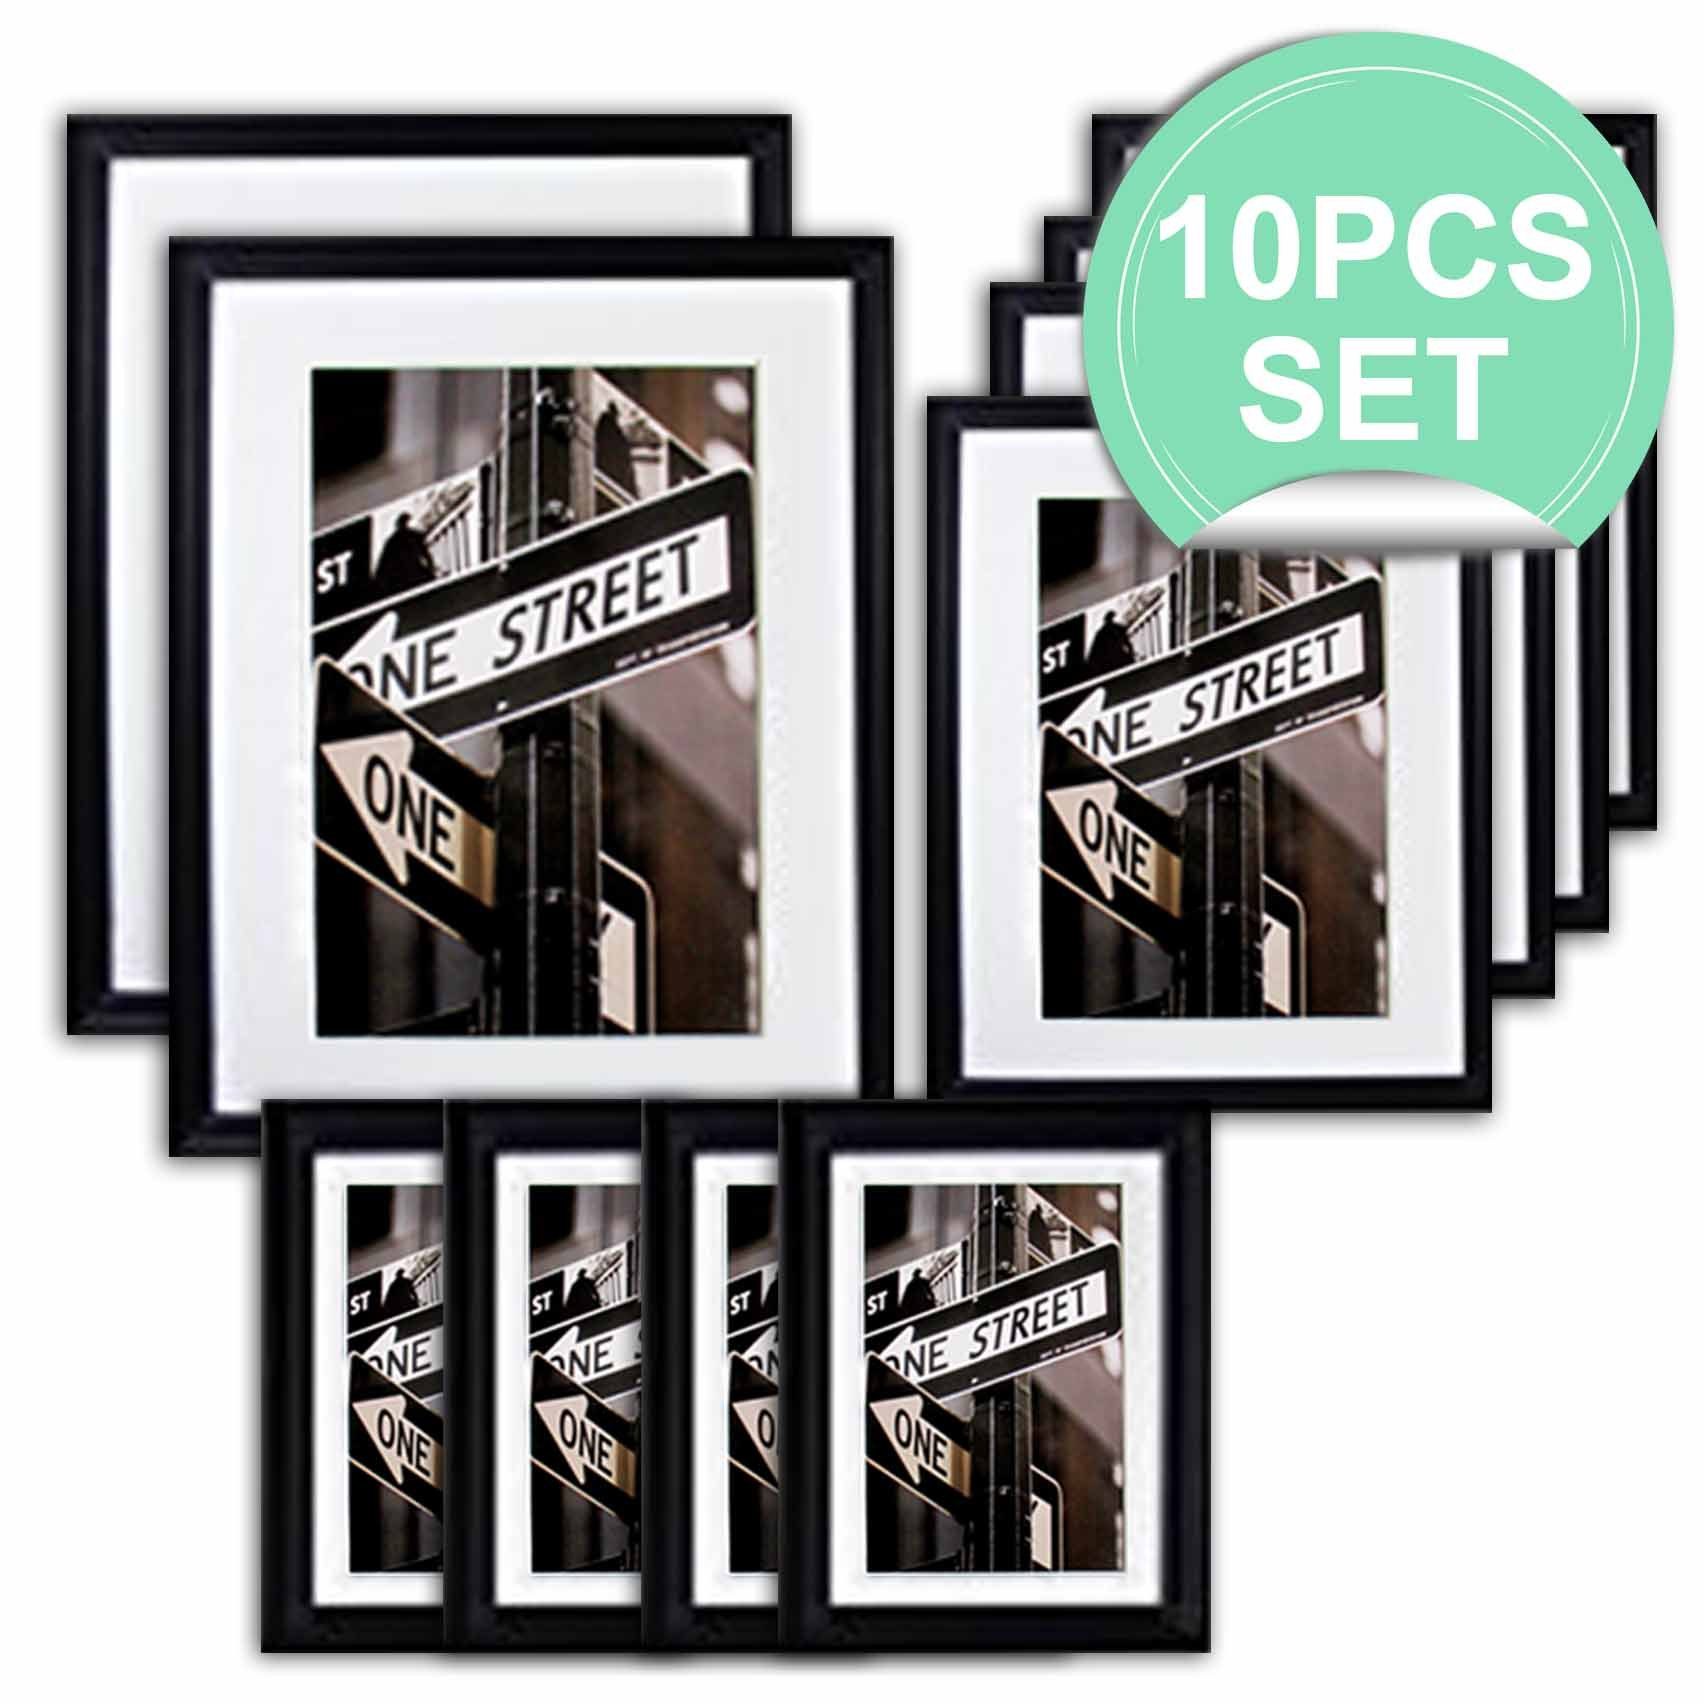 THE Display Guys 10 Piece Matte Black Solid Pine Wood Photo Frame Set, Two 11x14 Inch, Two 8x10 Inch, Six 5x7 Inch, With White Core Mat Boards And Picture Collage Mat Boards, Luxury Made Affordable by The Display Guys